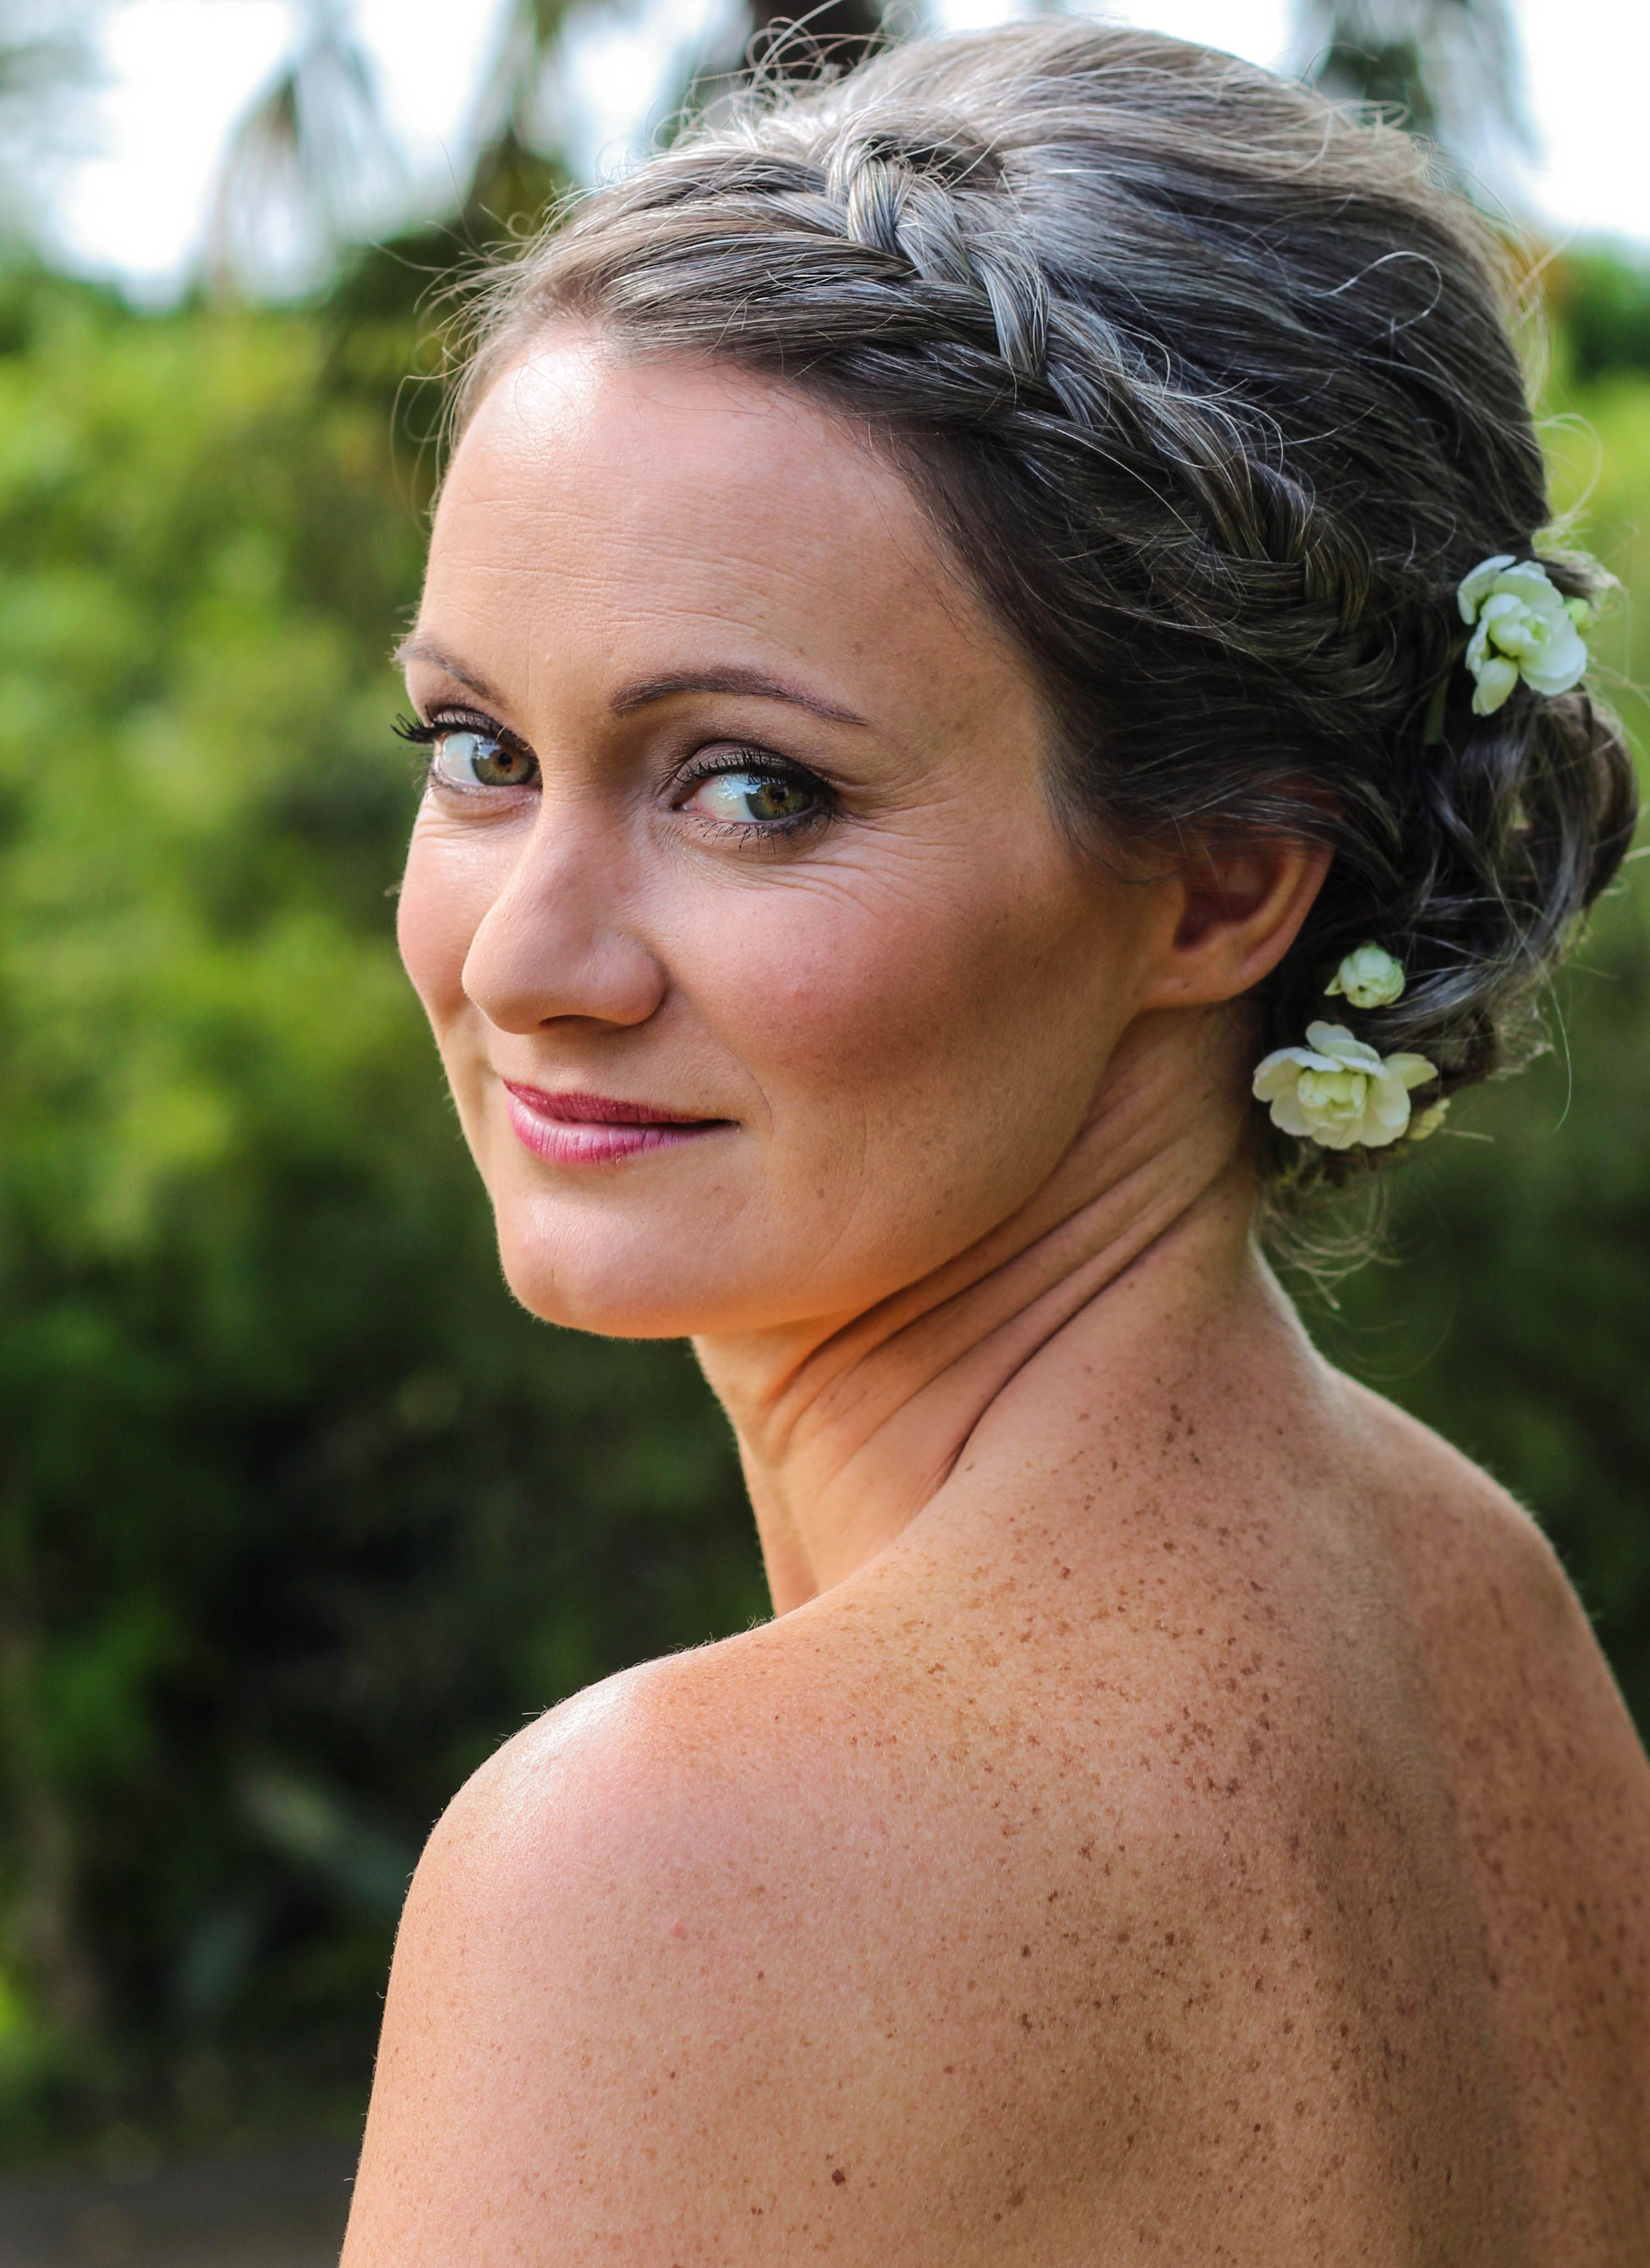 Bride Louise for her wedding day in Te Puna her cool